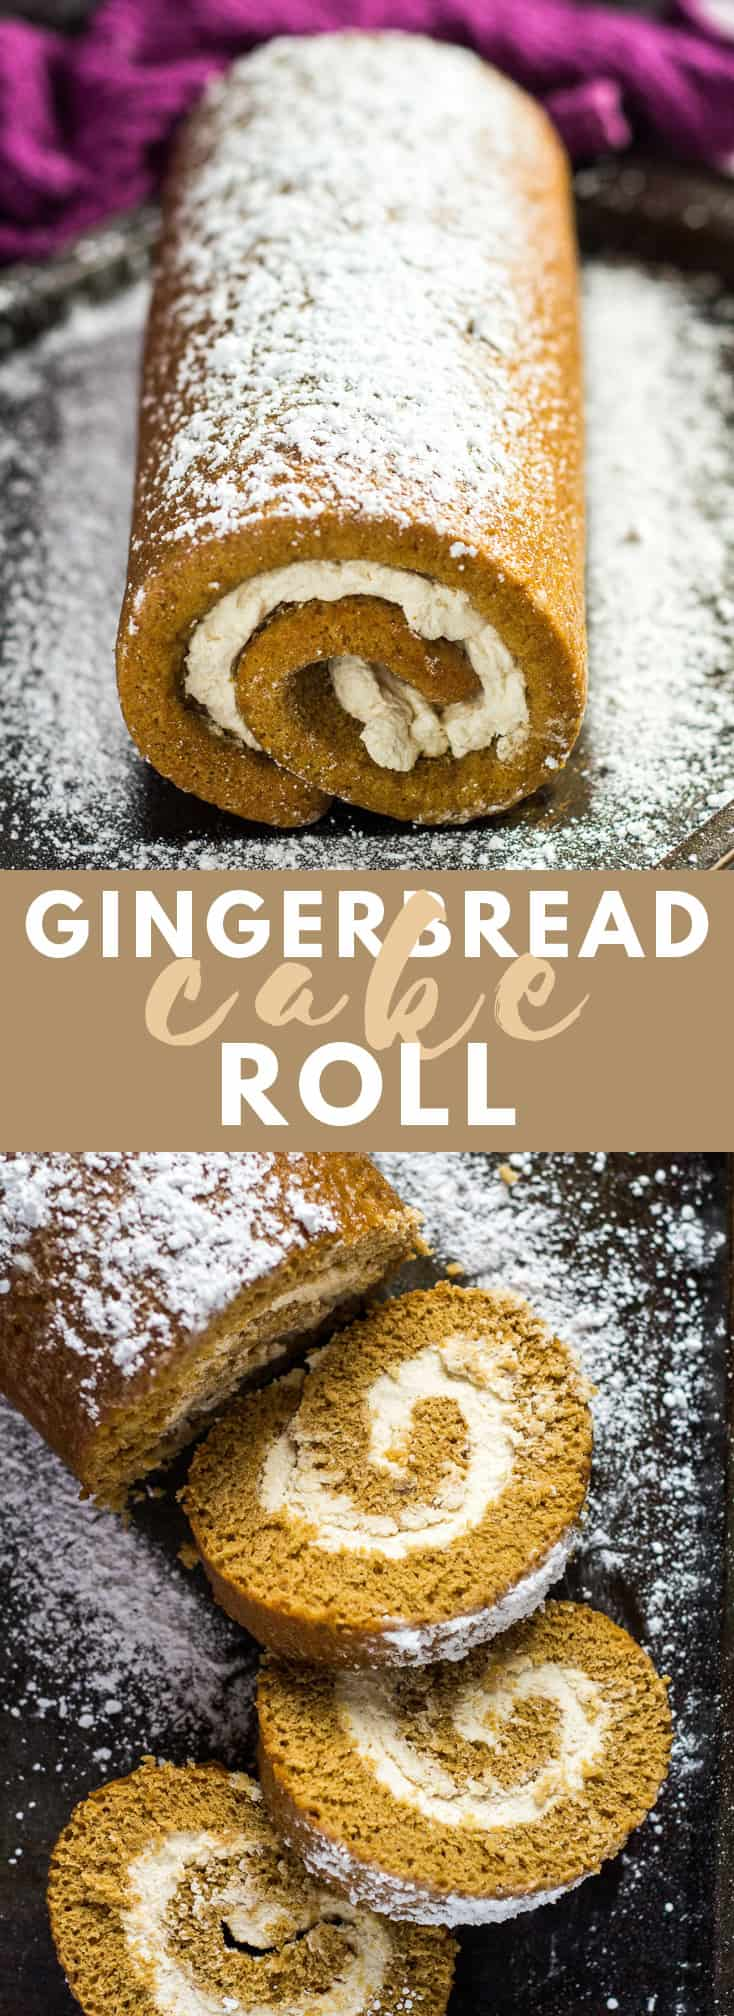 Gingerbread Cake Roll - Deliciously moist and fluffy gingerbread cake roll that is loaded with warm, cozy flavours, and filled with spiced whipped cream! #gingerbread #cakeroll #swissroll #cakerecipes #christmasrecipes